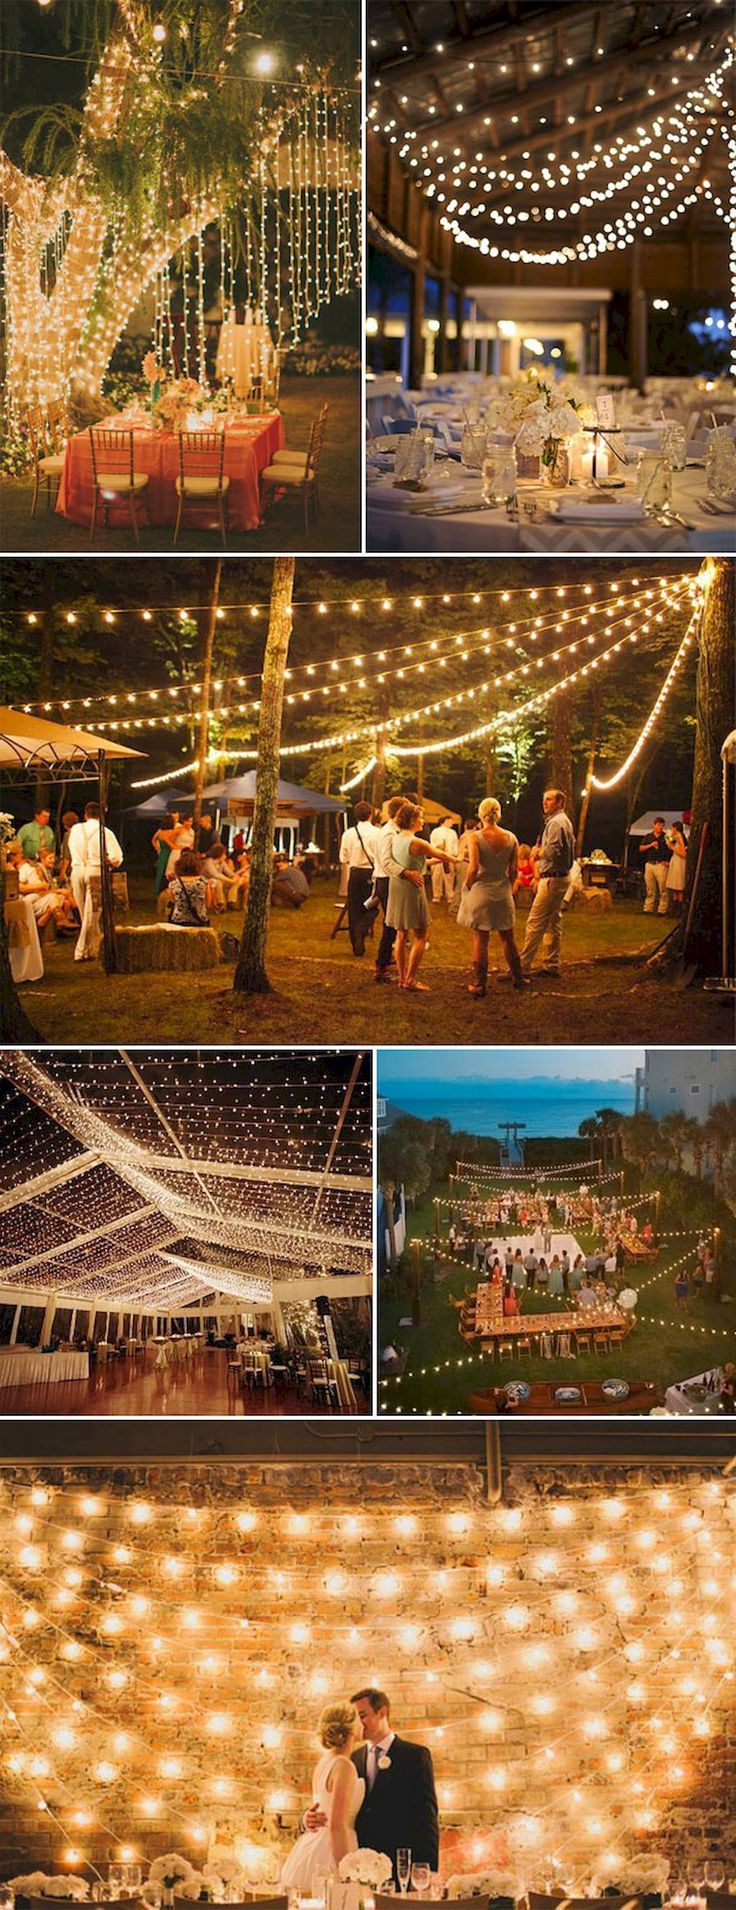 The 25 best outdoor weddings ideas on pinterest outdoor wedding the 25 best outdoor weddings ideas on pinterest outdoor wedding arbors rustic outdoor parties and outdoor wedding alters junglespirit Images